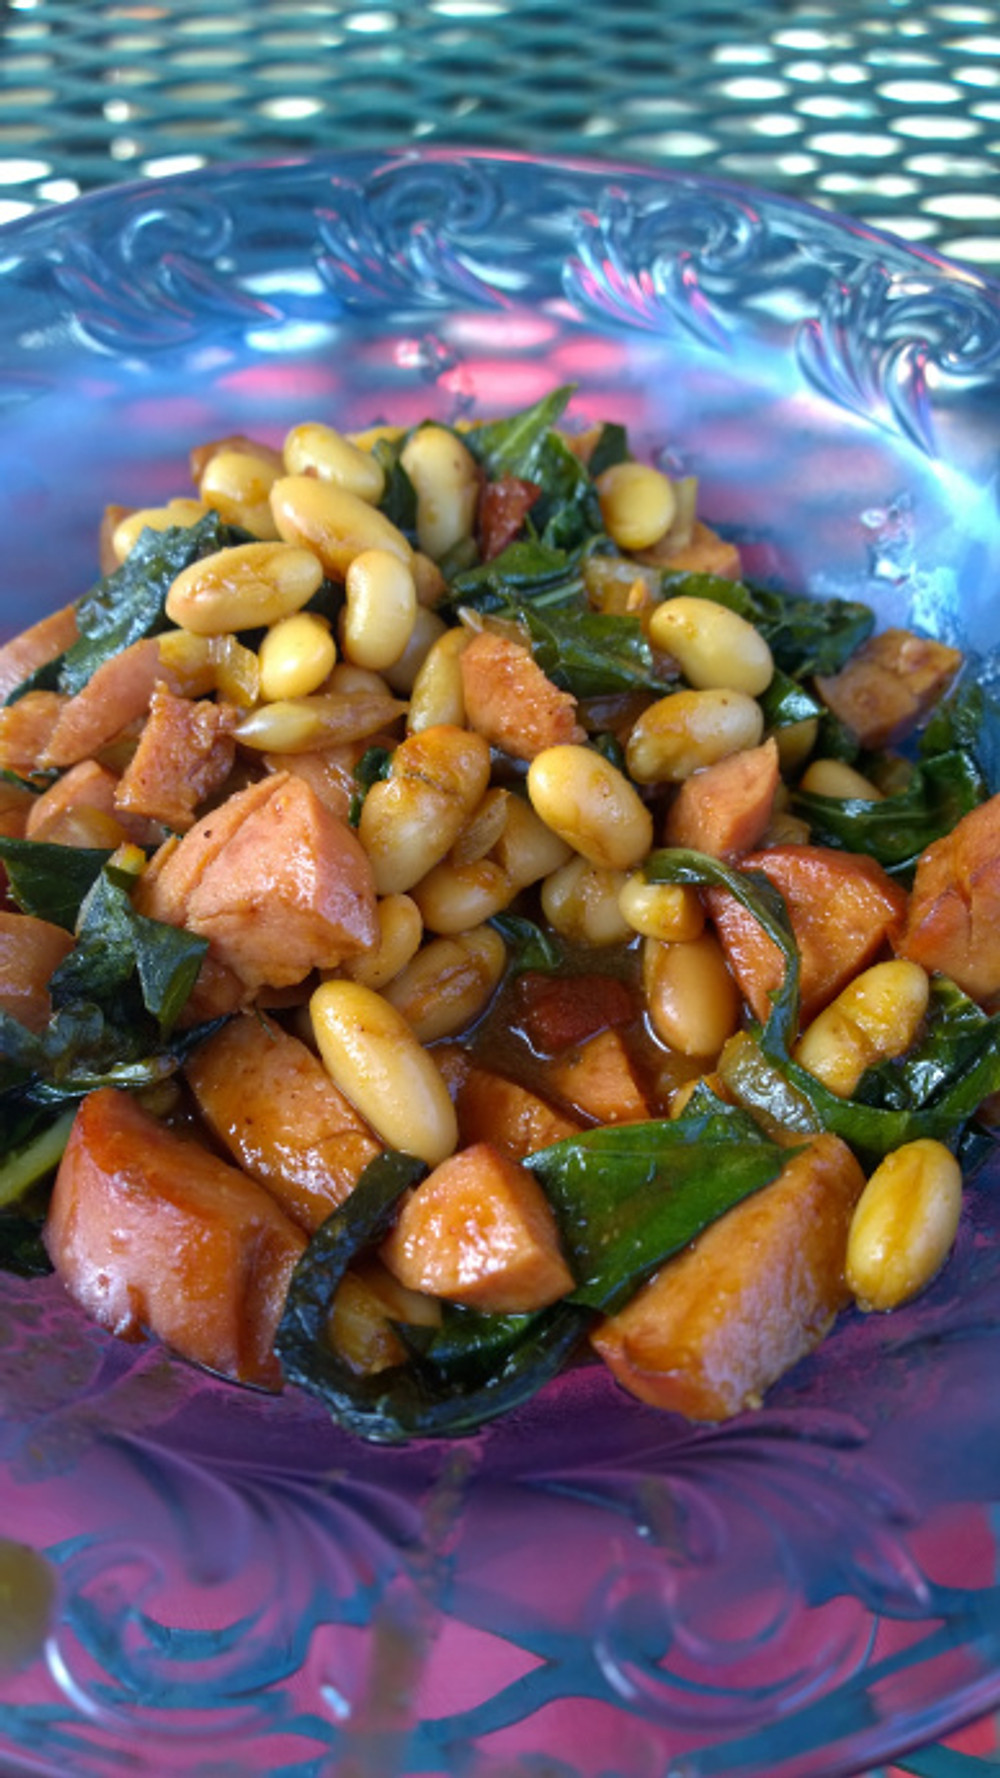 915 bbq beans with kale